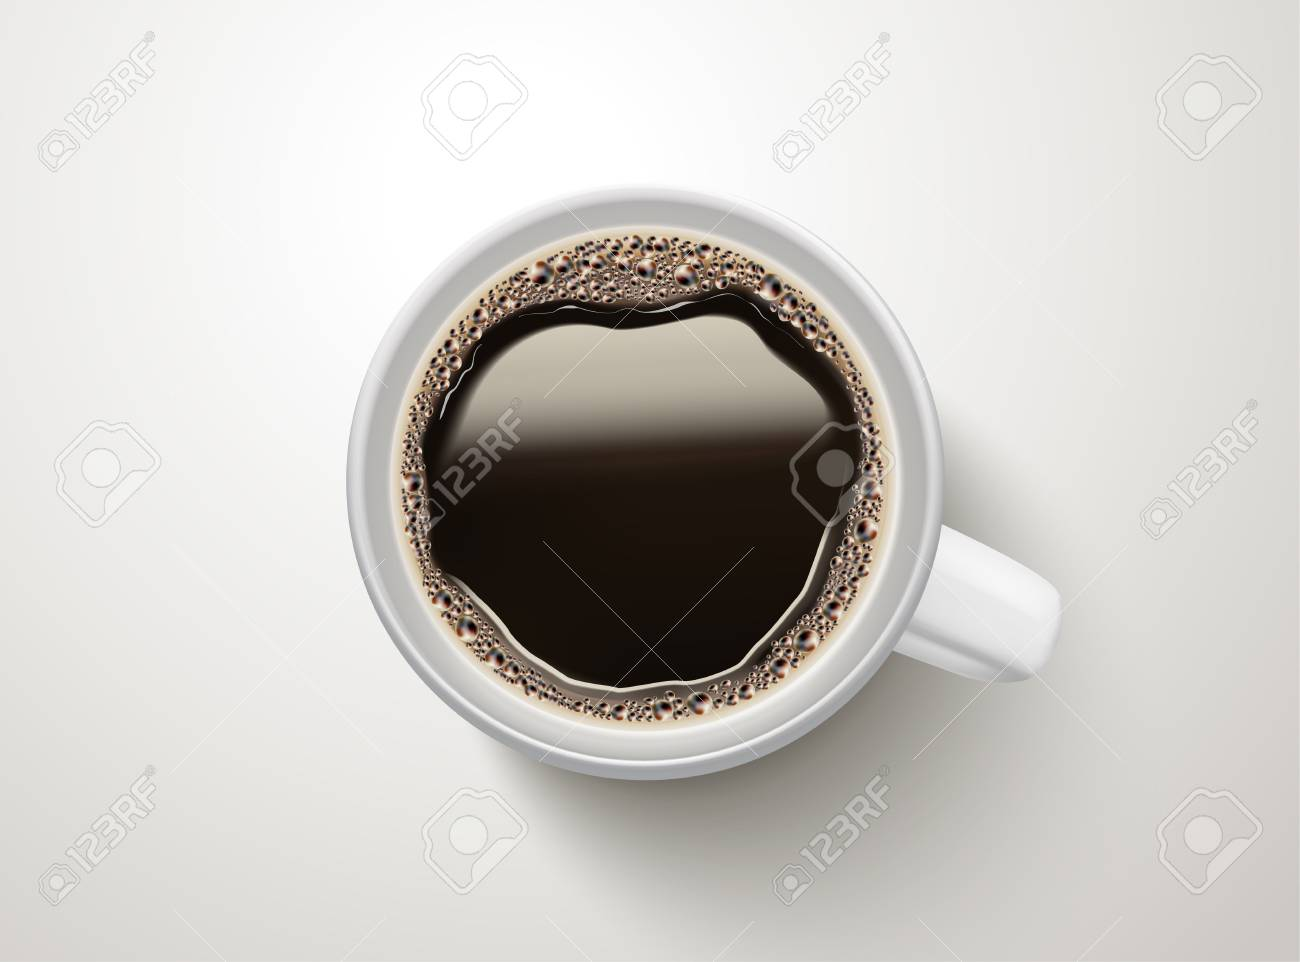 Top view of a cup of black coffee illustration - 98400469